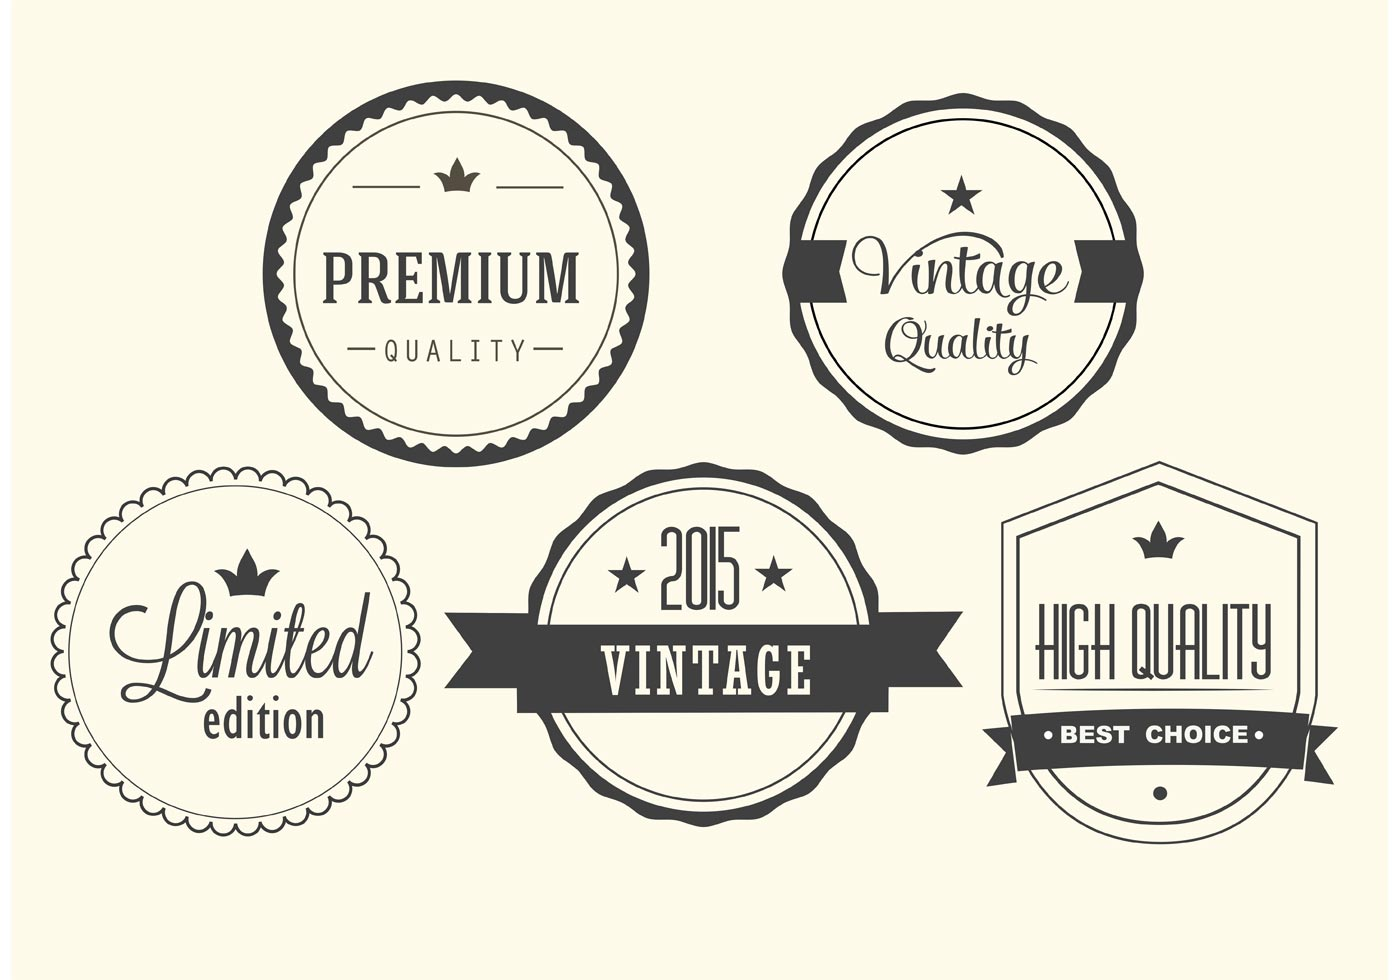 Vintage Label Free Vector Art - (61,601 Free Downloads)